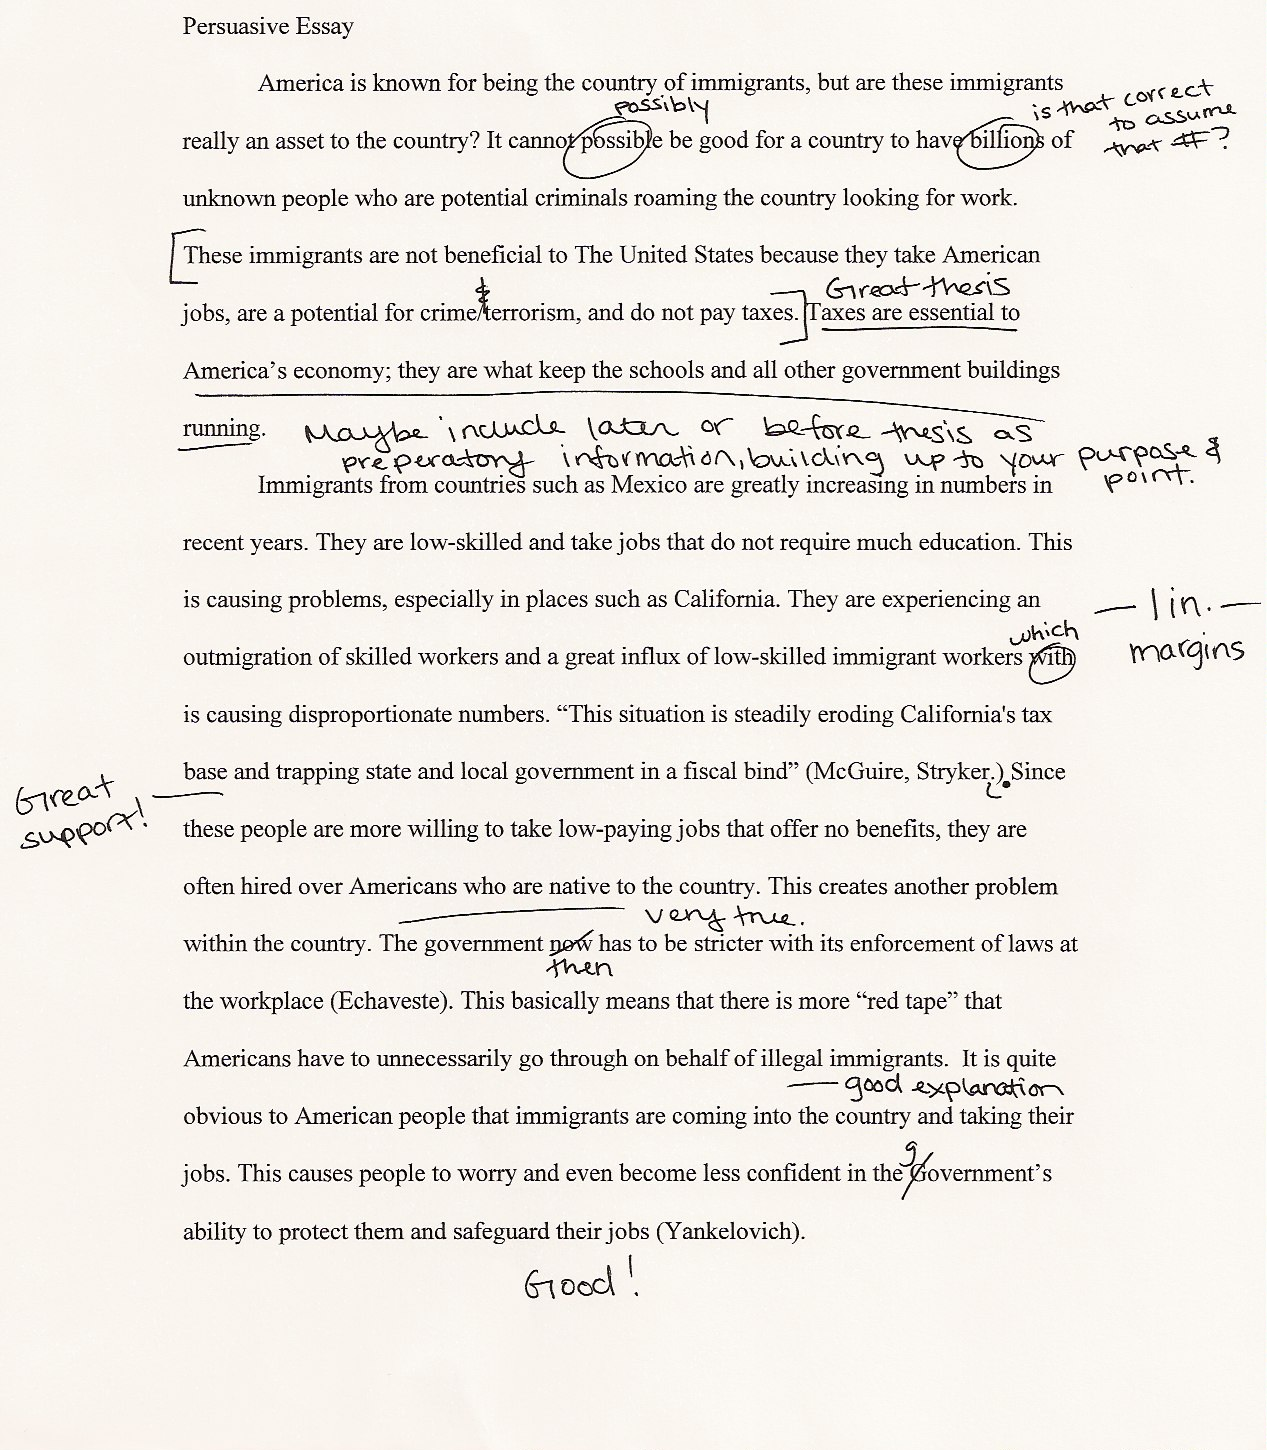 writing persuasive essays writing persuasive essays tk